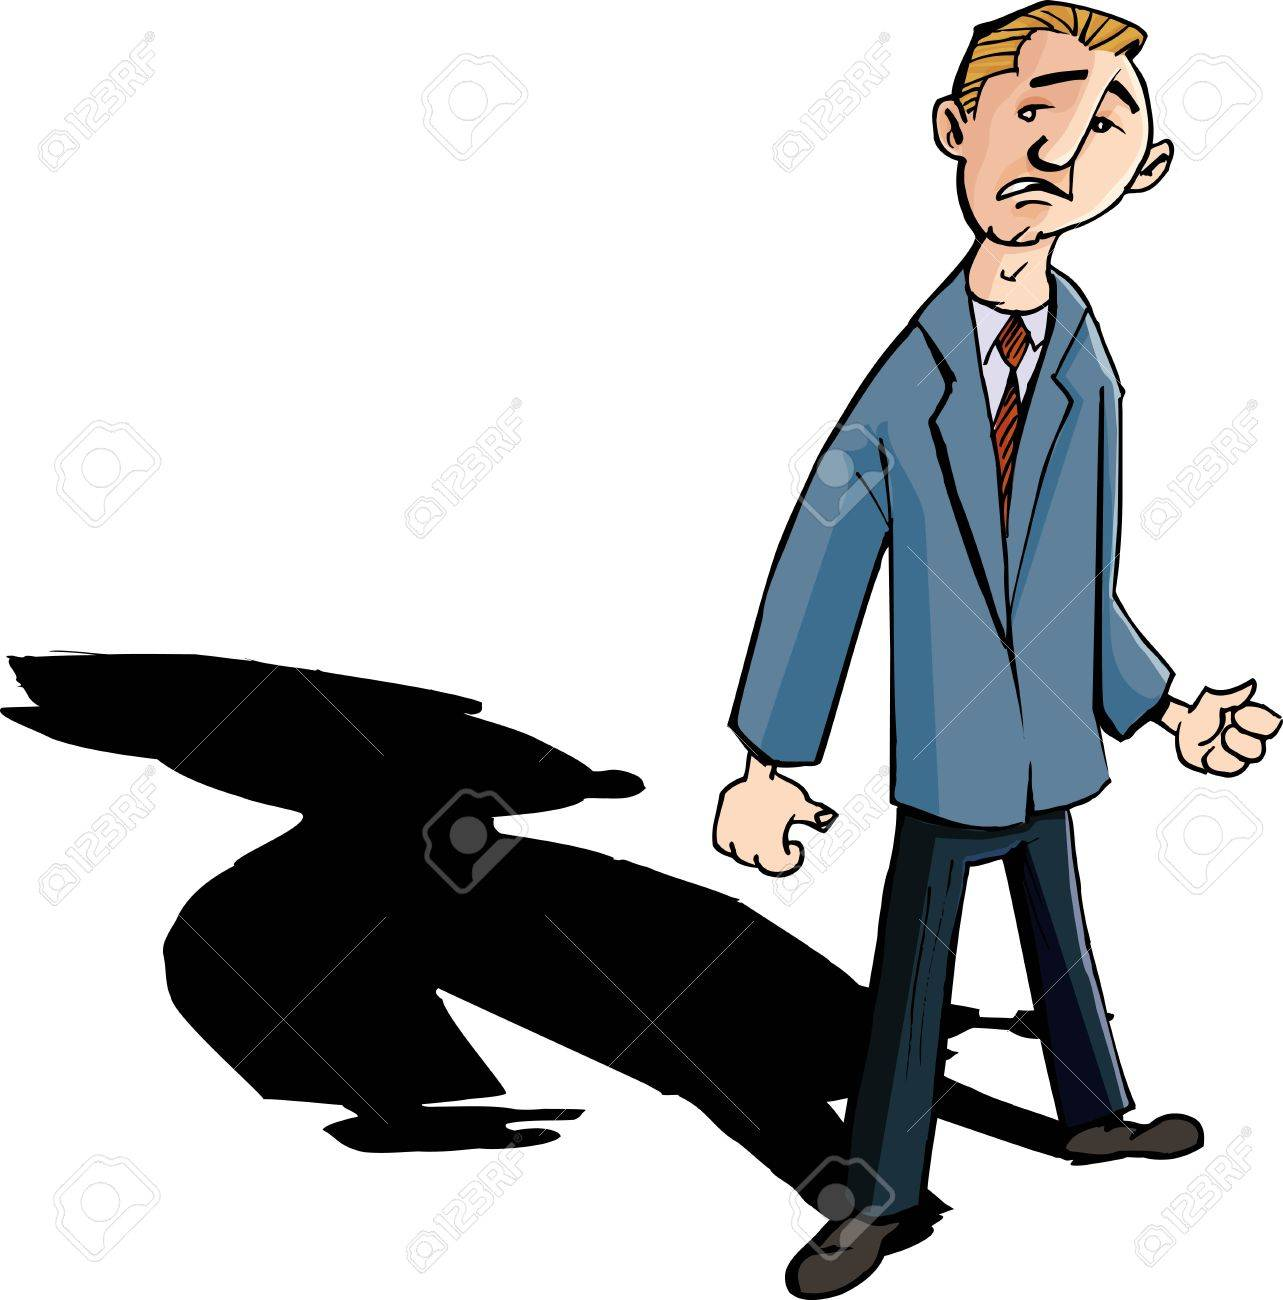 Cartoon of worried man with a shadow behind him. Isolated - 9701559